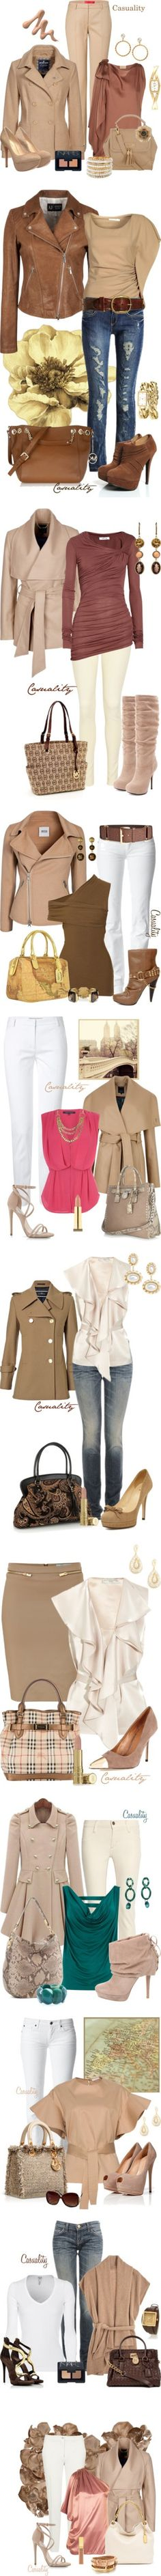 """Creme/Neutrals"" by casuality on Polyvore"